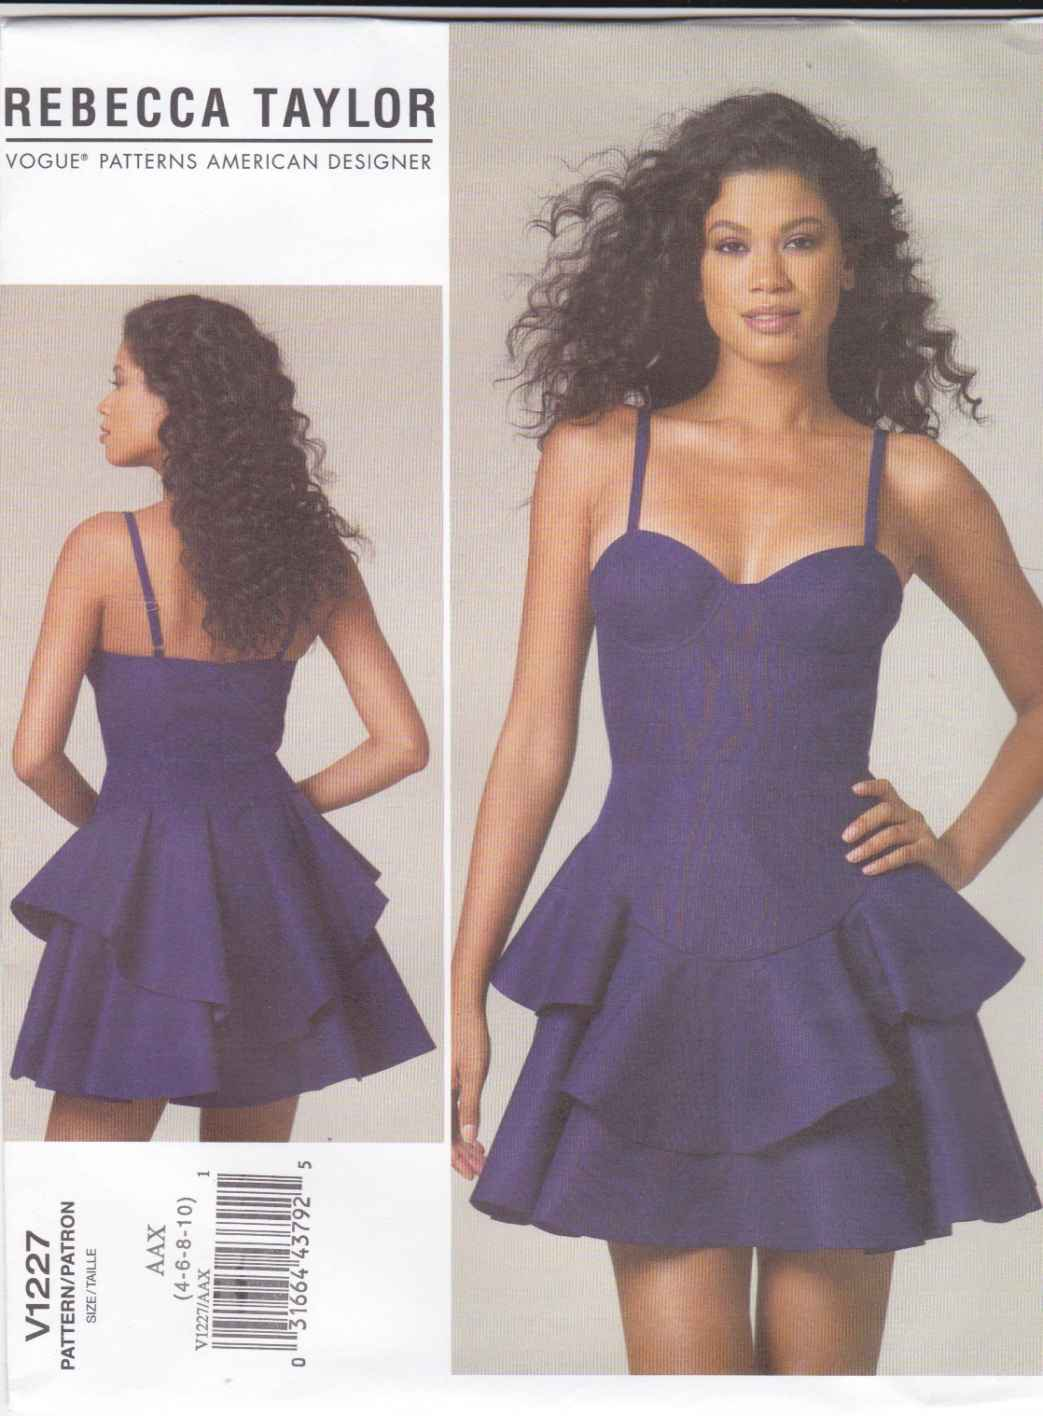 Vogue Sewing Pattern 1227 V1227 Misses Size 4-10 Rebecca Taylor Fitted Bodice Flared Skirt Dress